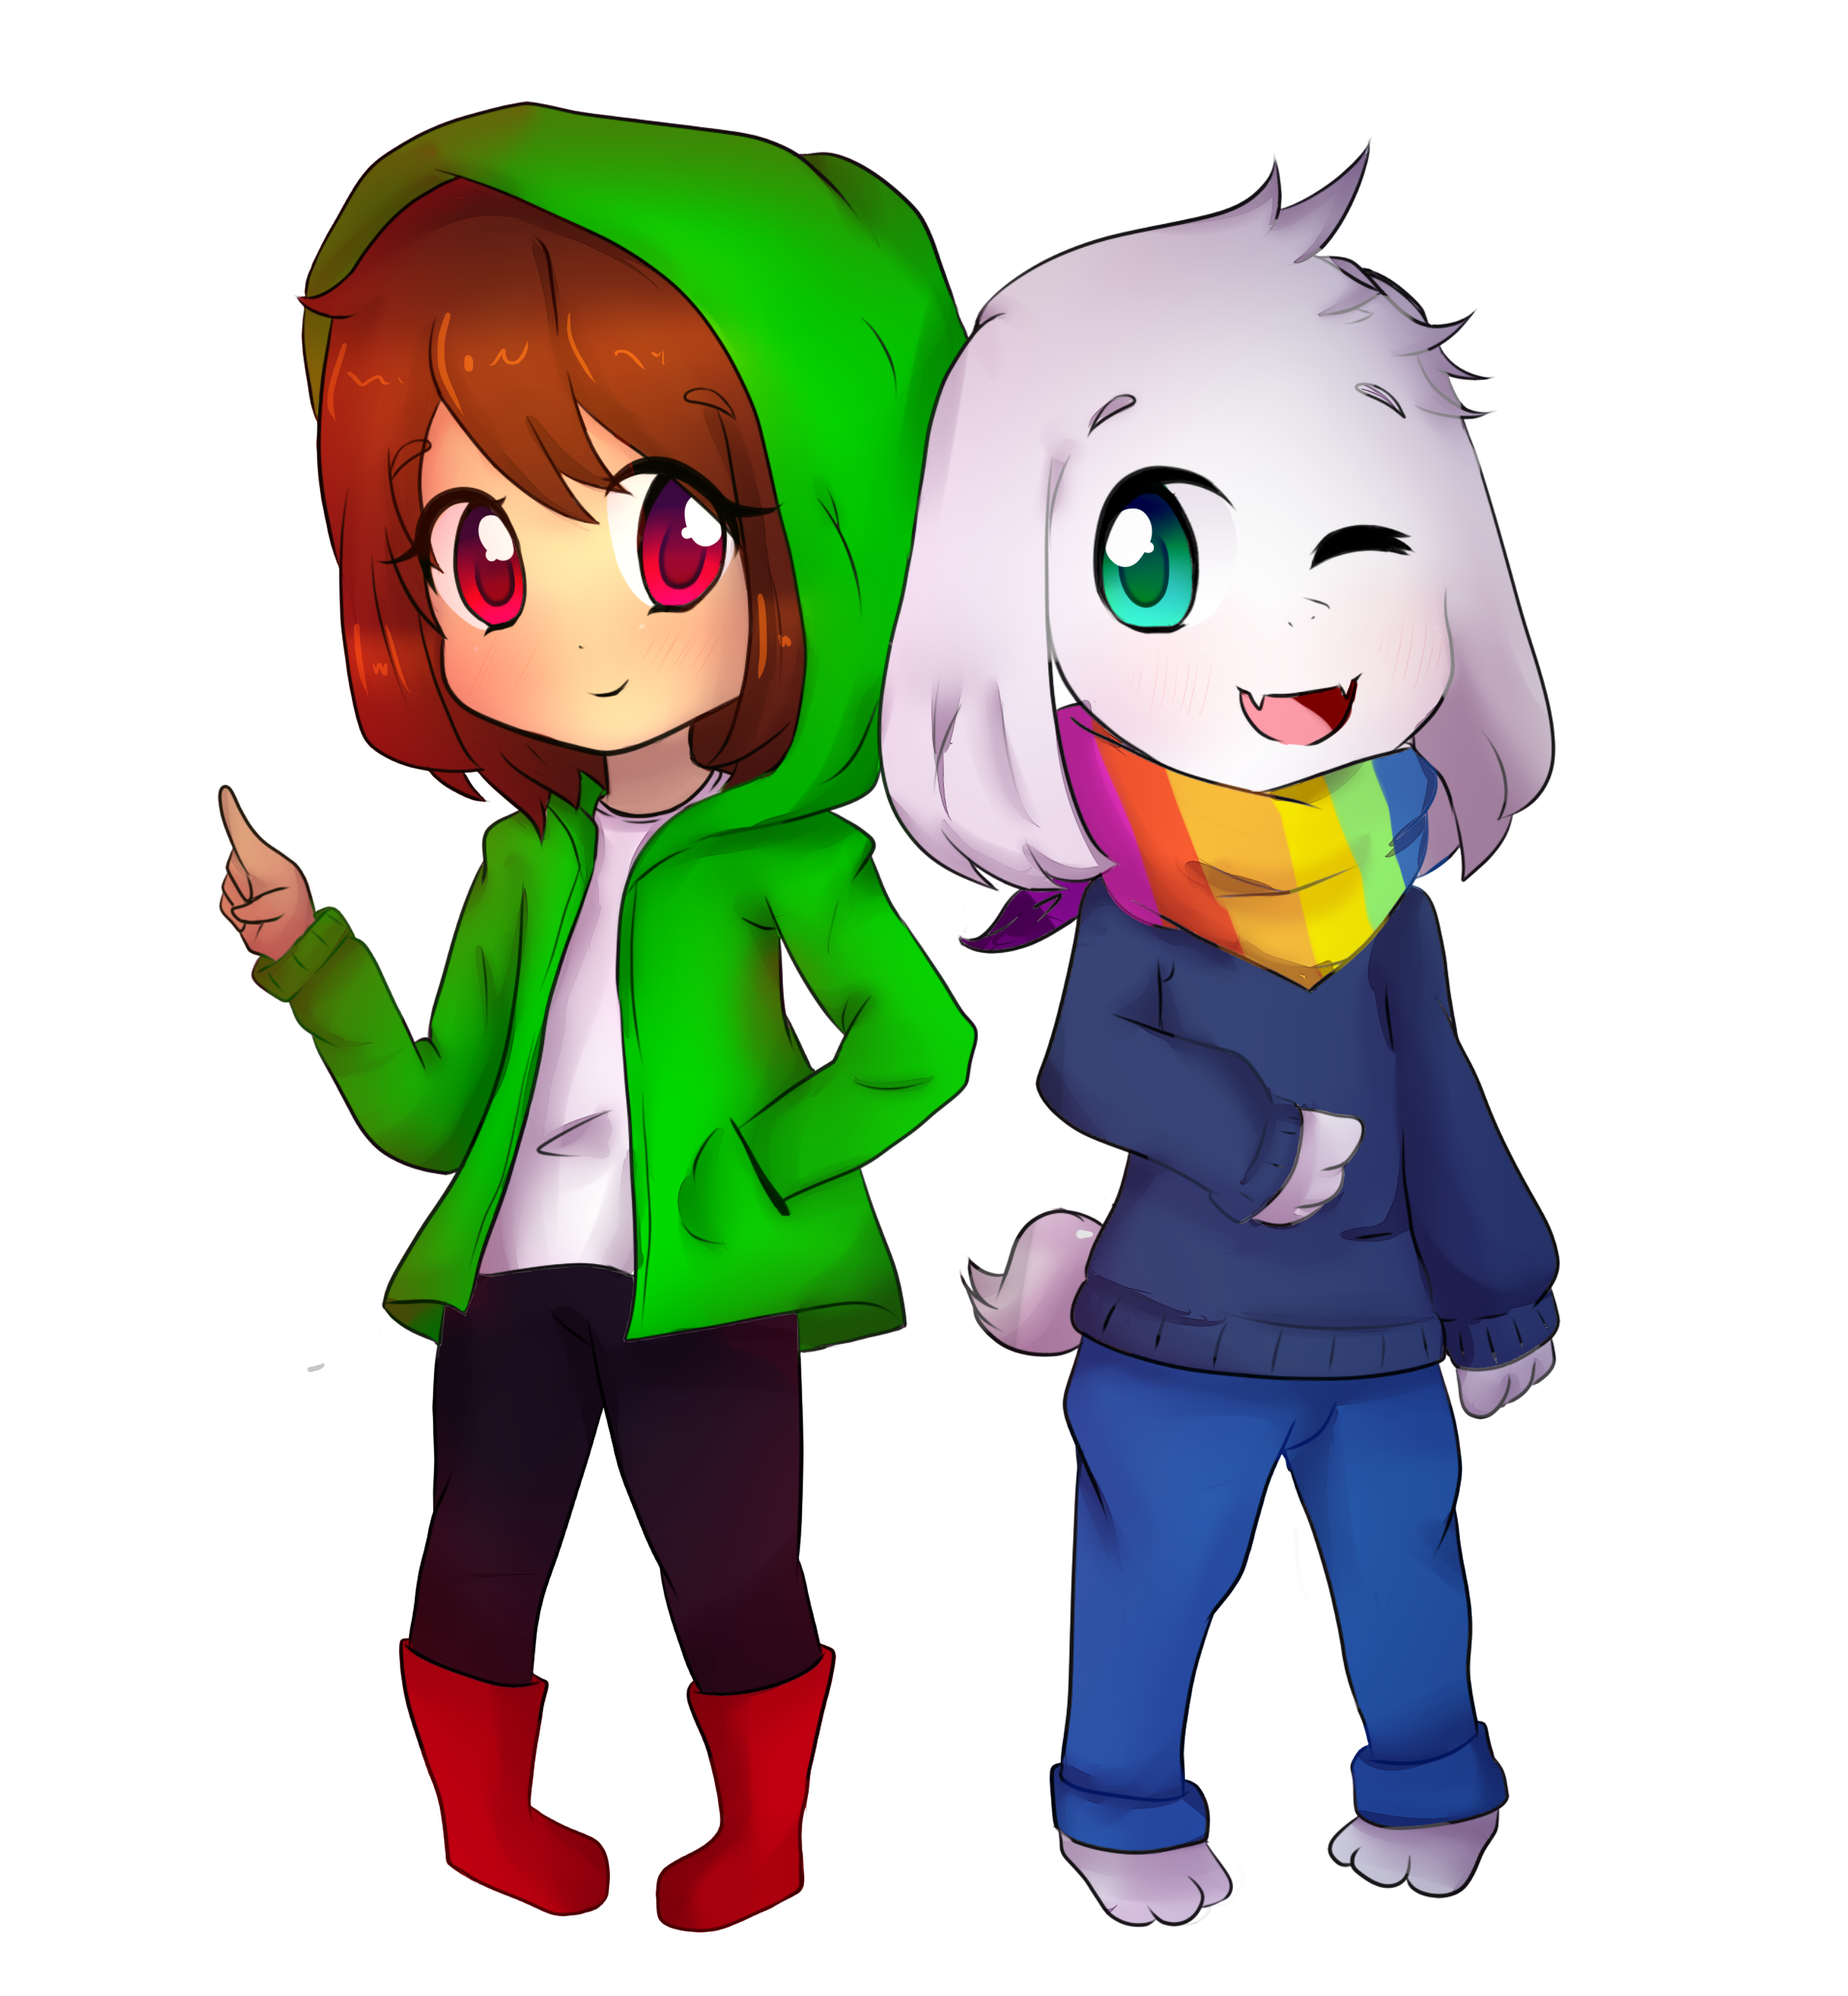 STORYSHIFT - Chara and Asriel by CrystalKazeame19 on